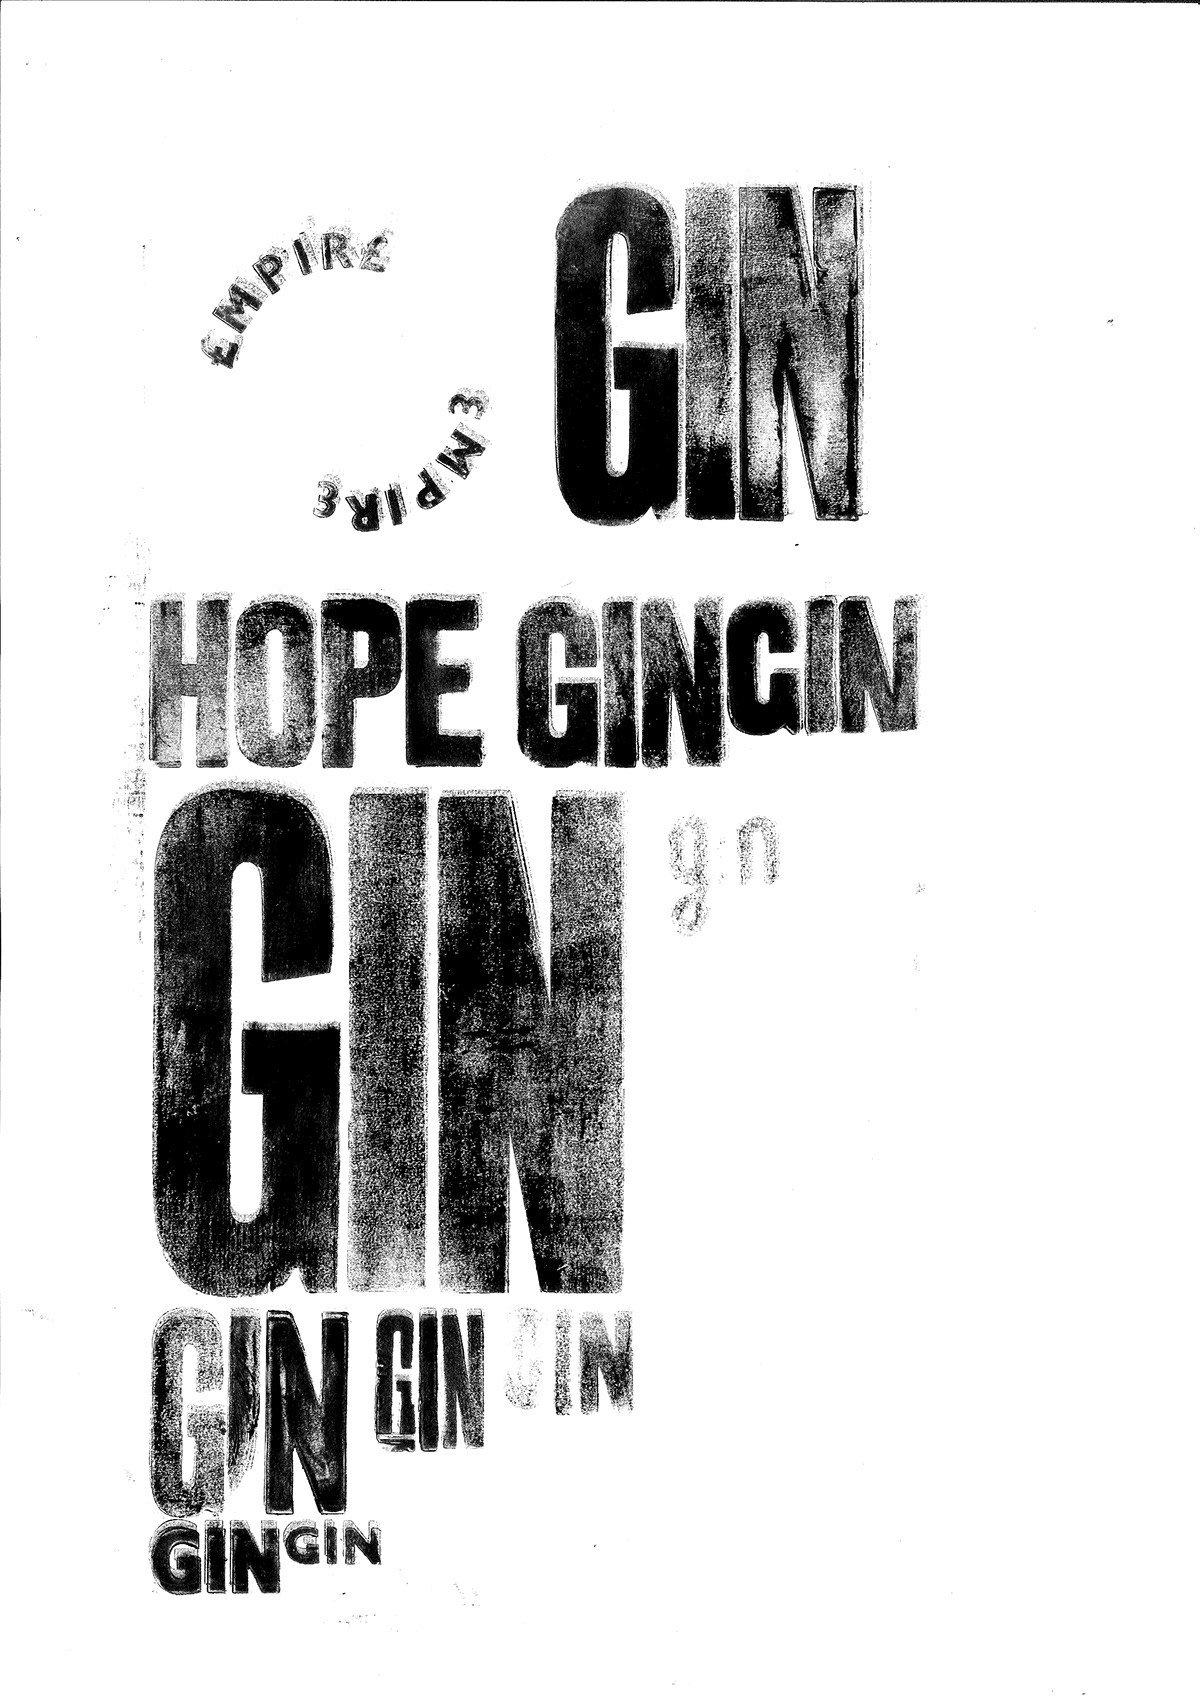 Empire Craft Gin Traditional Label Rebranding on Behance